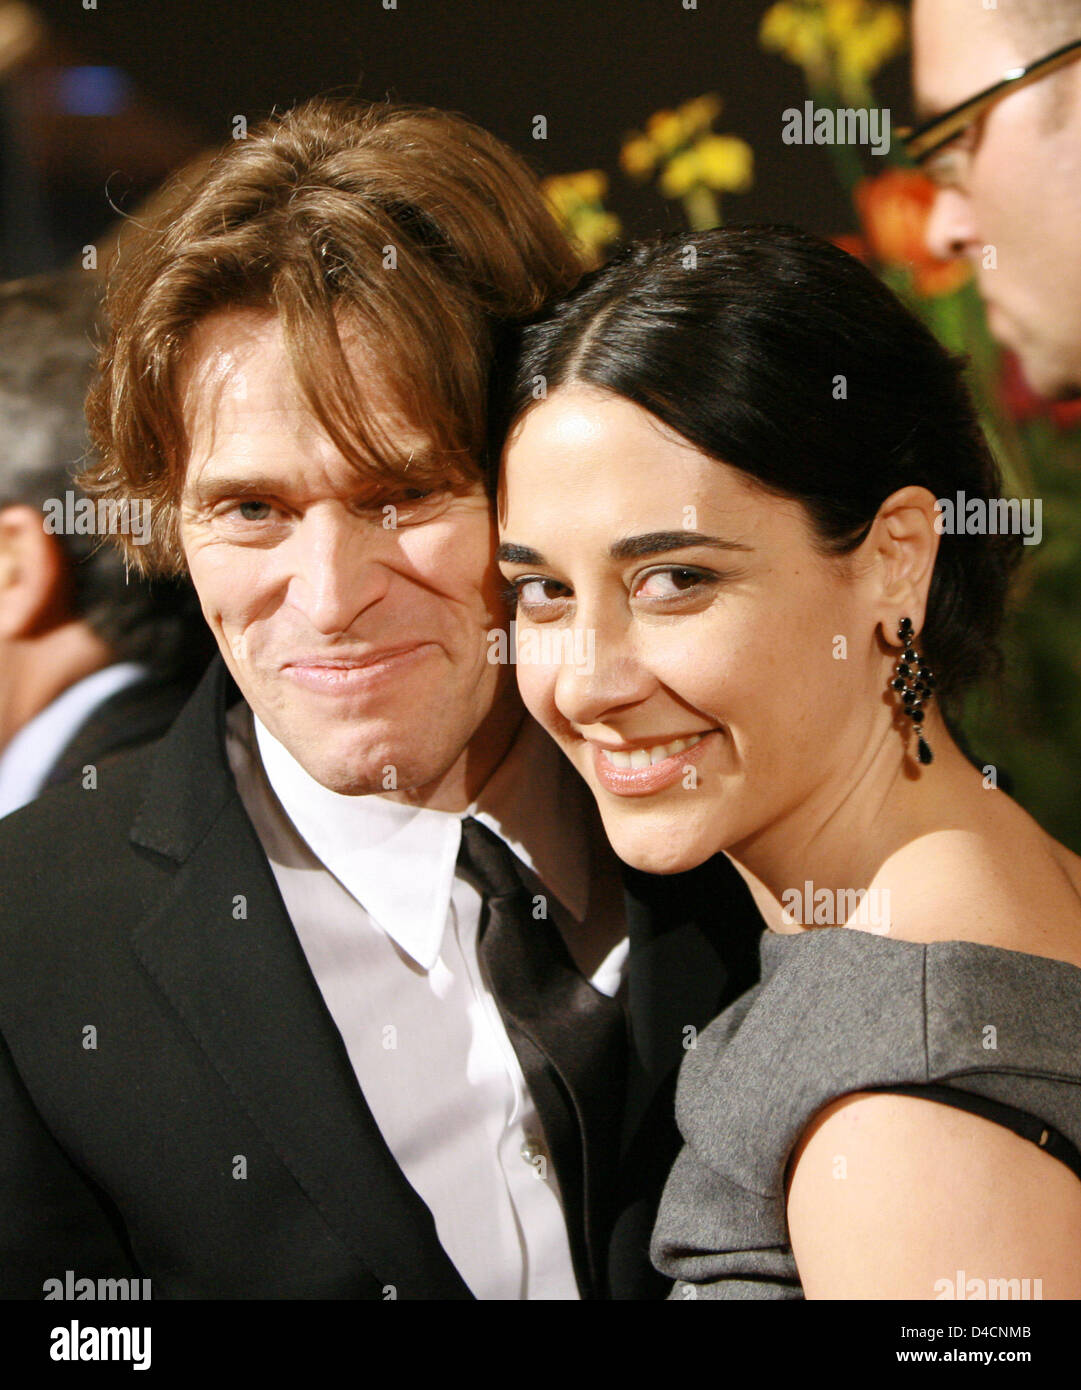 Willem Dafoe And Wife Giada Colagrande Imágenes De Stock & Willem ...